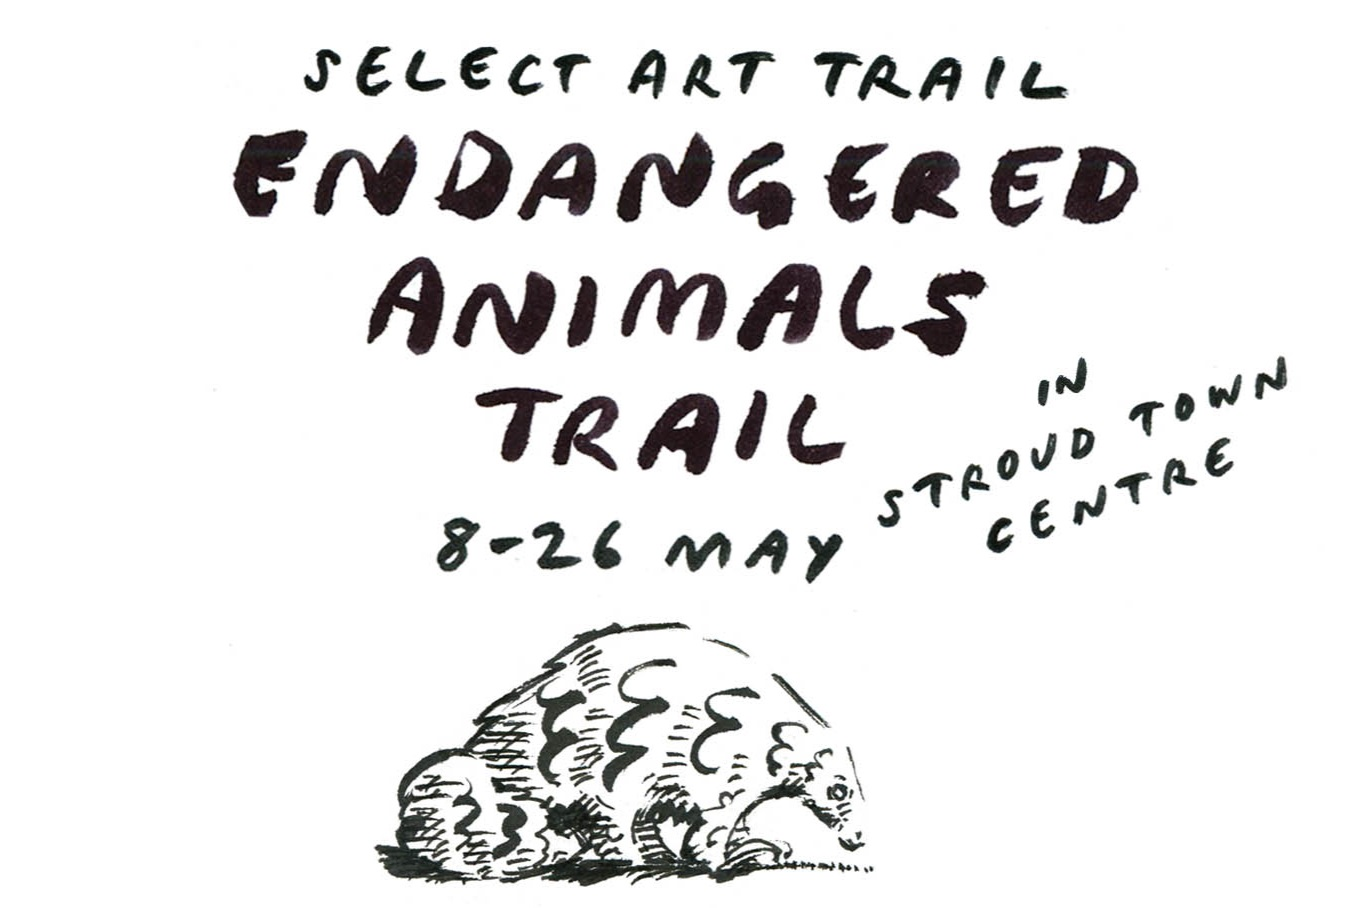 - A trail for families and children that I designed for SITSelect festival, taking place between the 8th and 26th of May 2019.Participants pick up a leaflet which they fill in with the names of ten animals represented in shop windows in Stroud town centre. Then they take their completed leaflet they take it to local conservation charity Stroud Valleys Project and pick up a free badge.Thanks to Stroud Festival for funding this.